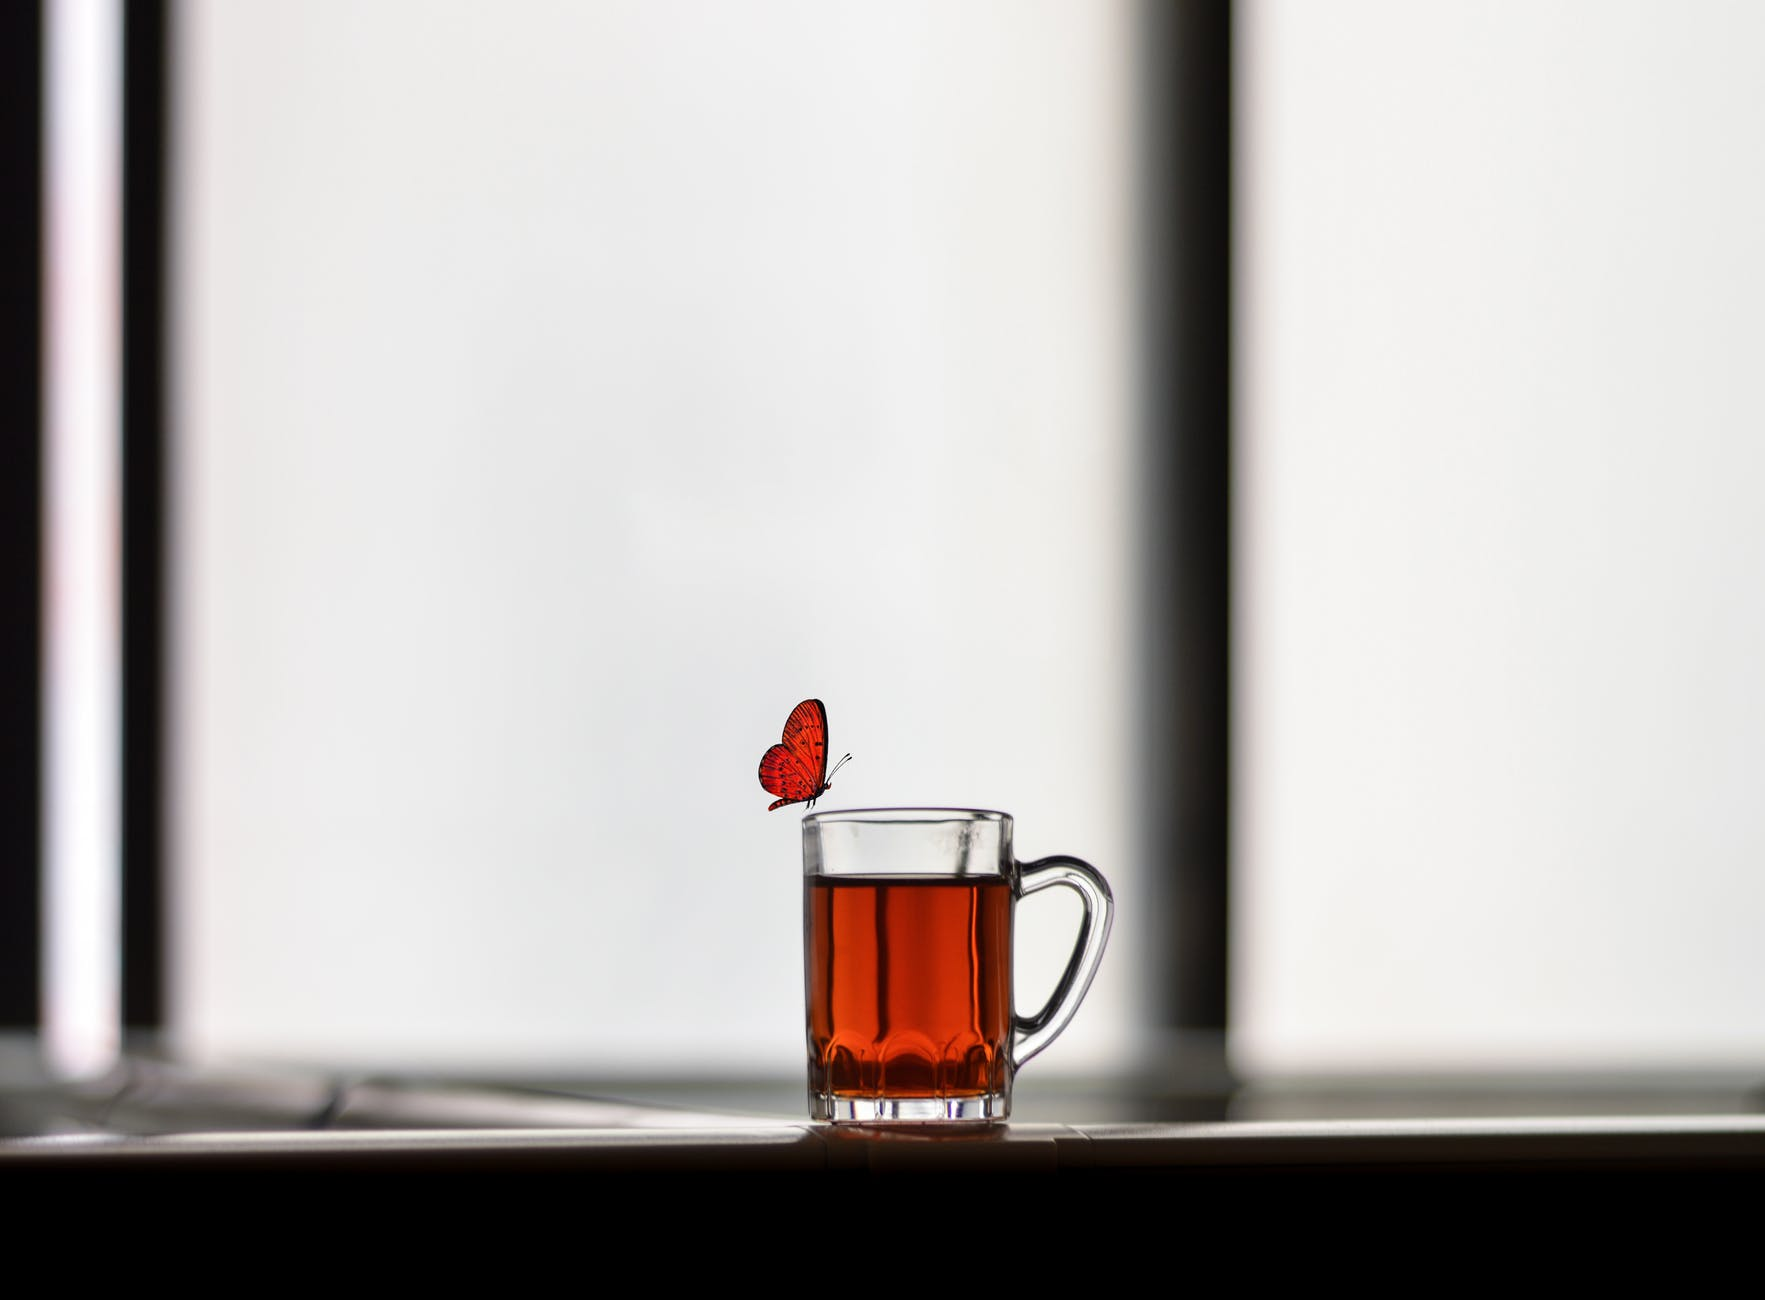 butterfly on clear glass mug on table